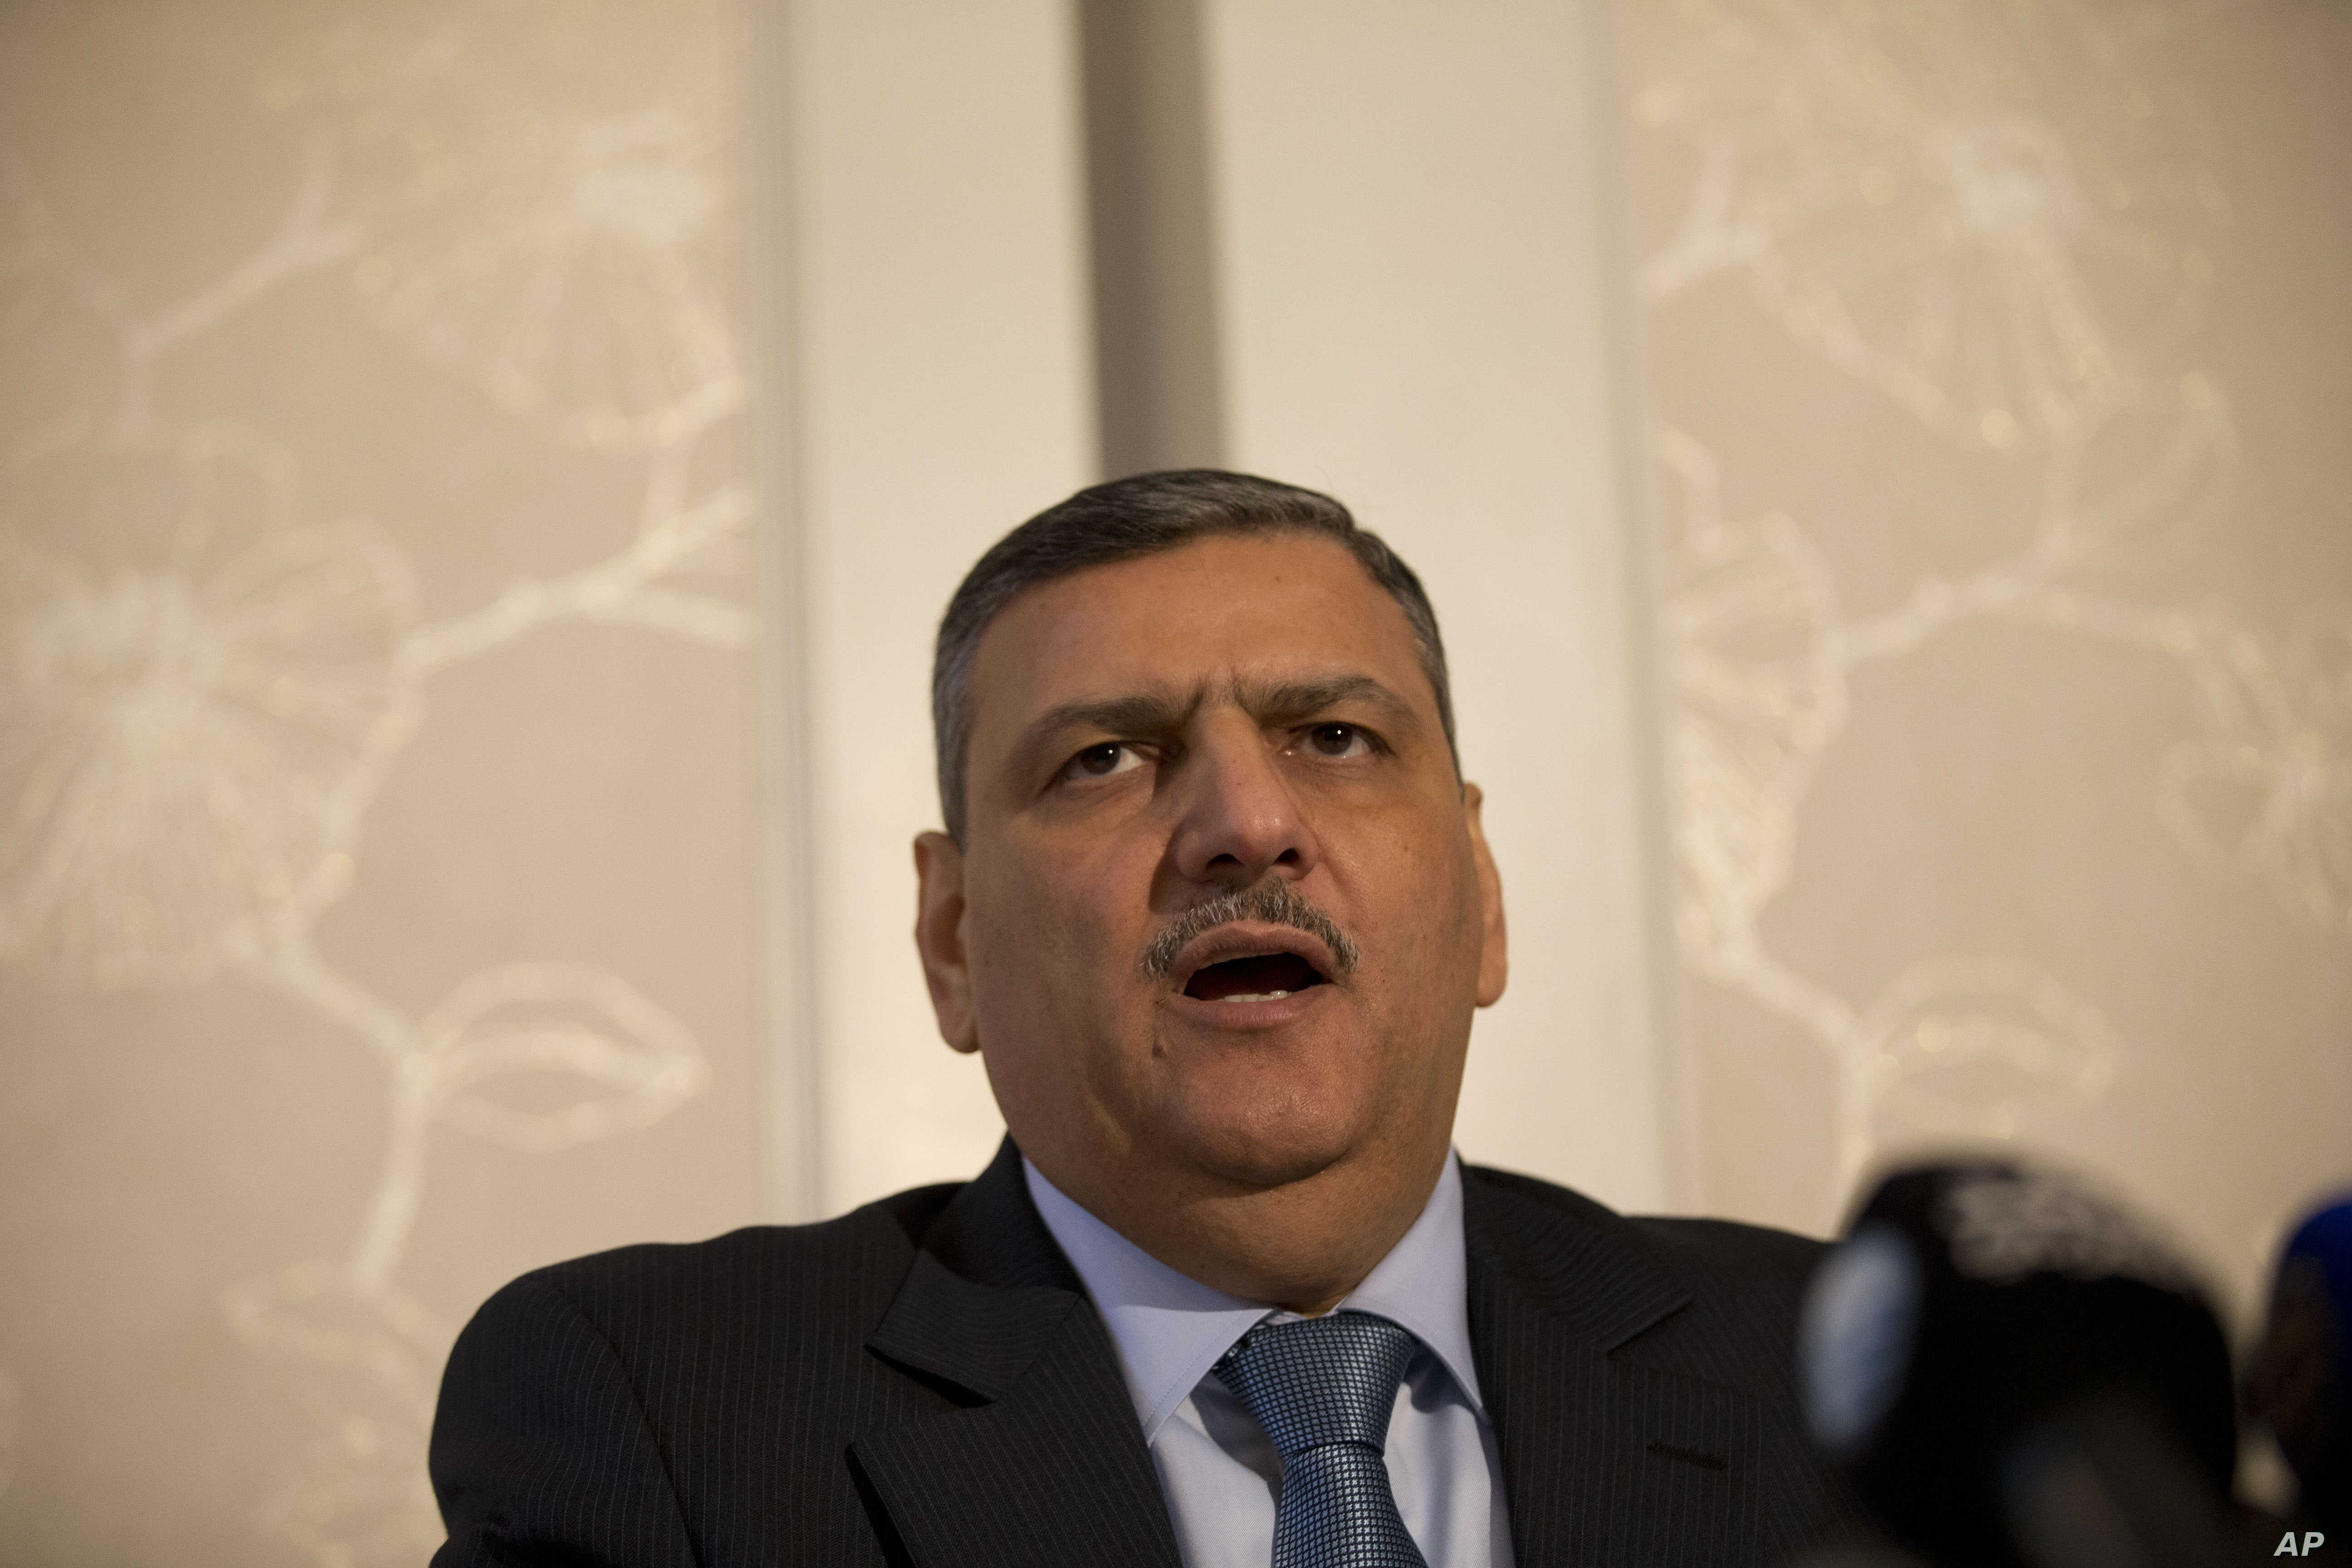 """Riyad Hijab, head of the Syrian opposition High Negotiations Committee, gives a press conference in London, Feb. 10, 2016. The committee said Hijab thinks the chances of reaching an agreement on a political transition in Syria are """"slim."""""""